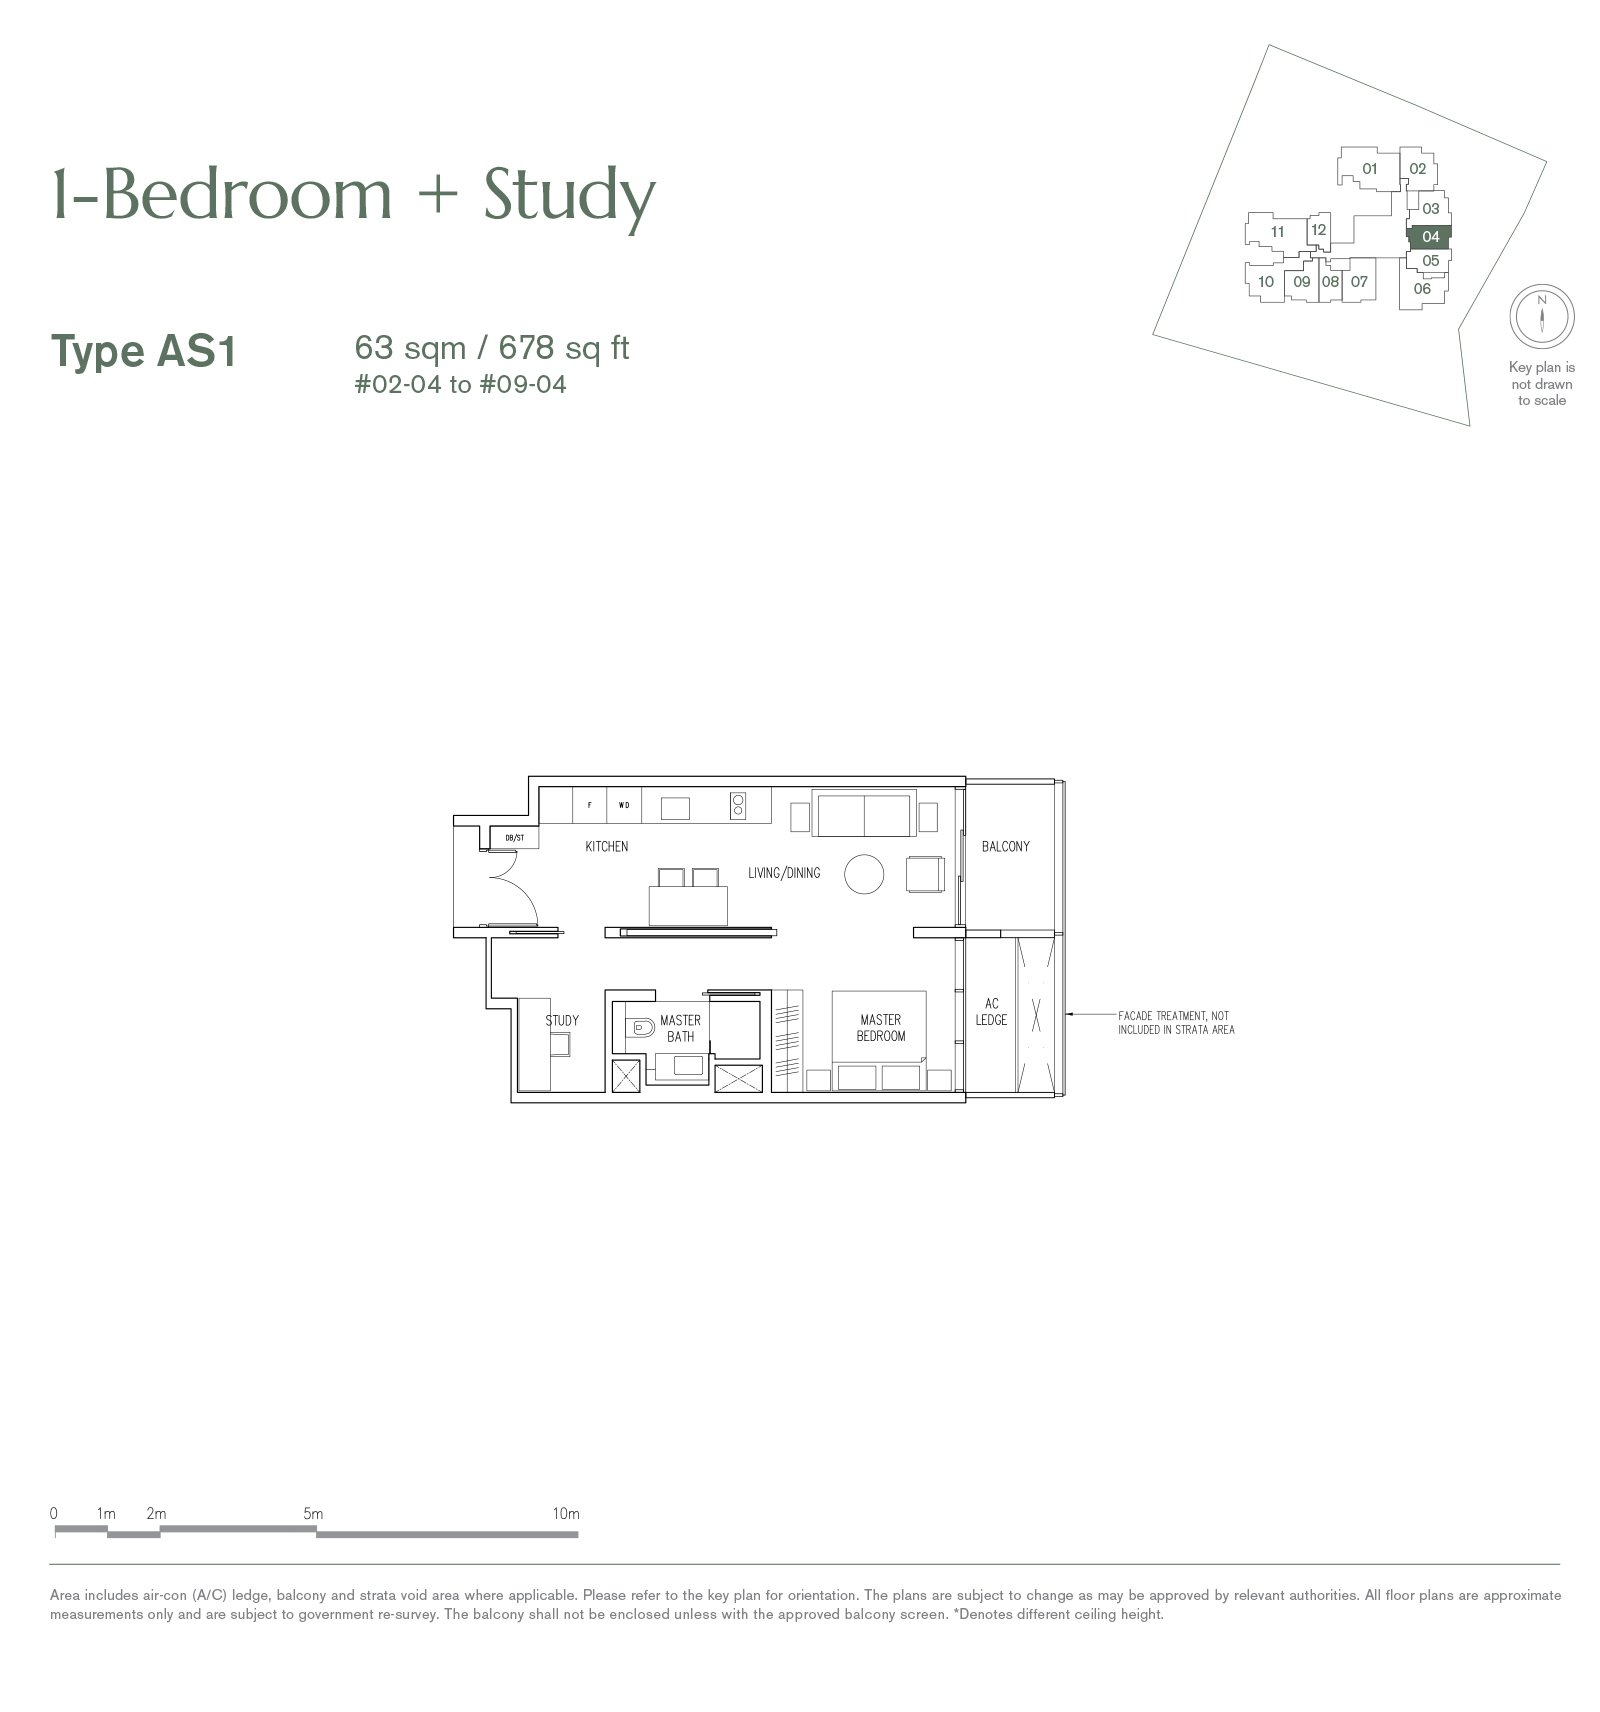 19 Nassim 纳森山公寓 floor plan 1-bedroom AS1